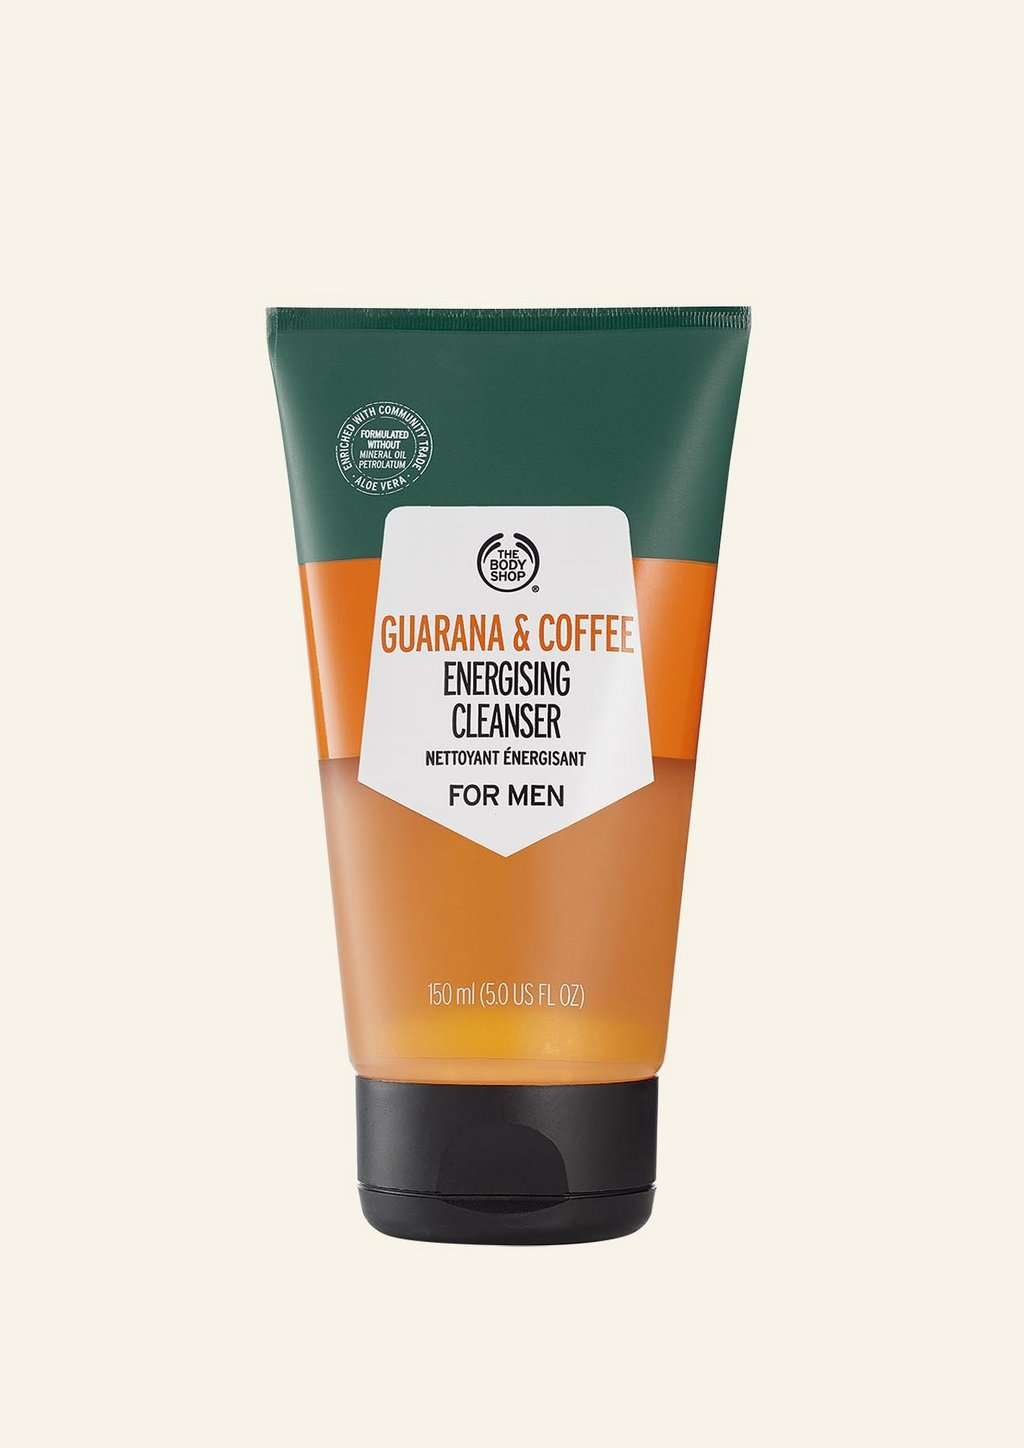 The Body Shop Guarana & Coffee Energising Cleanser